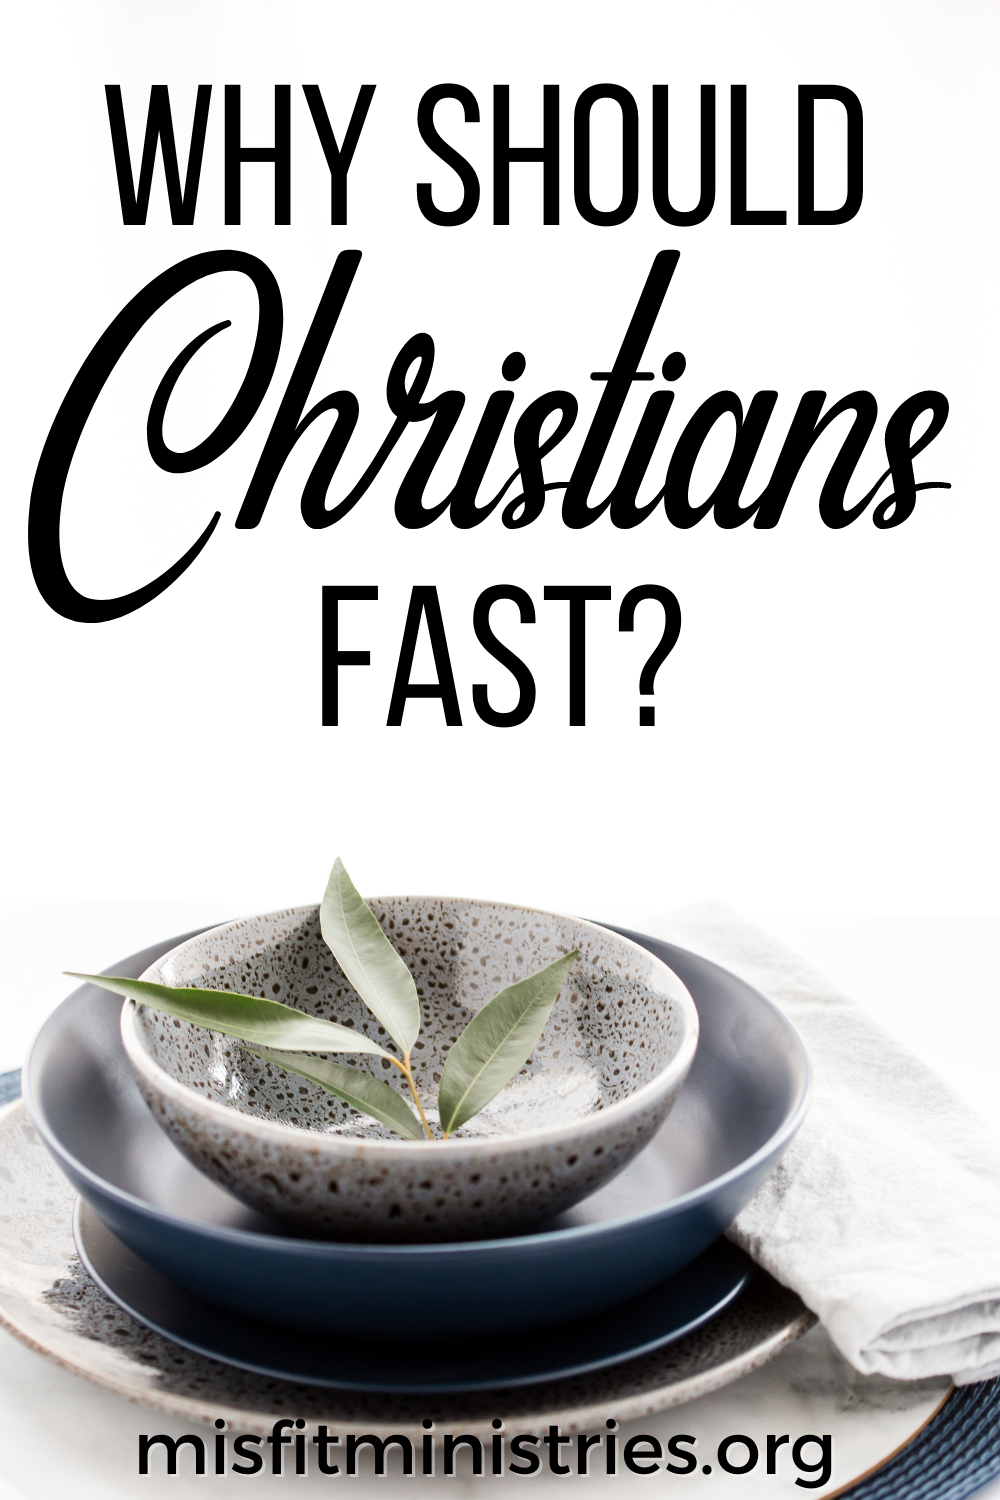 Why Should christians Fast